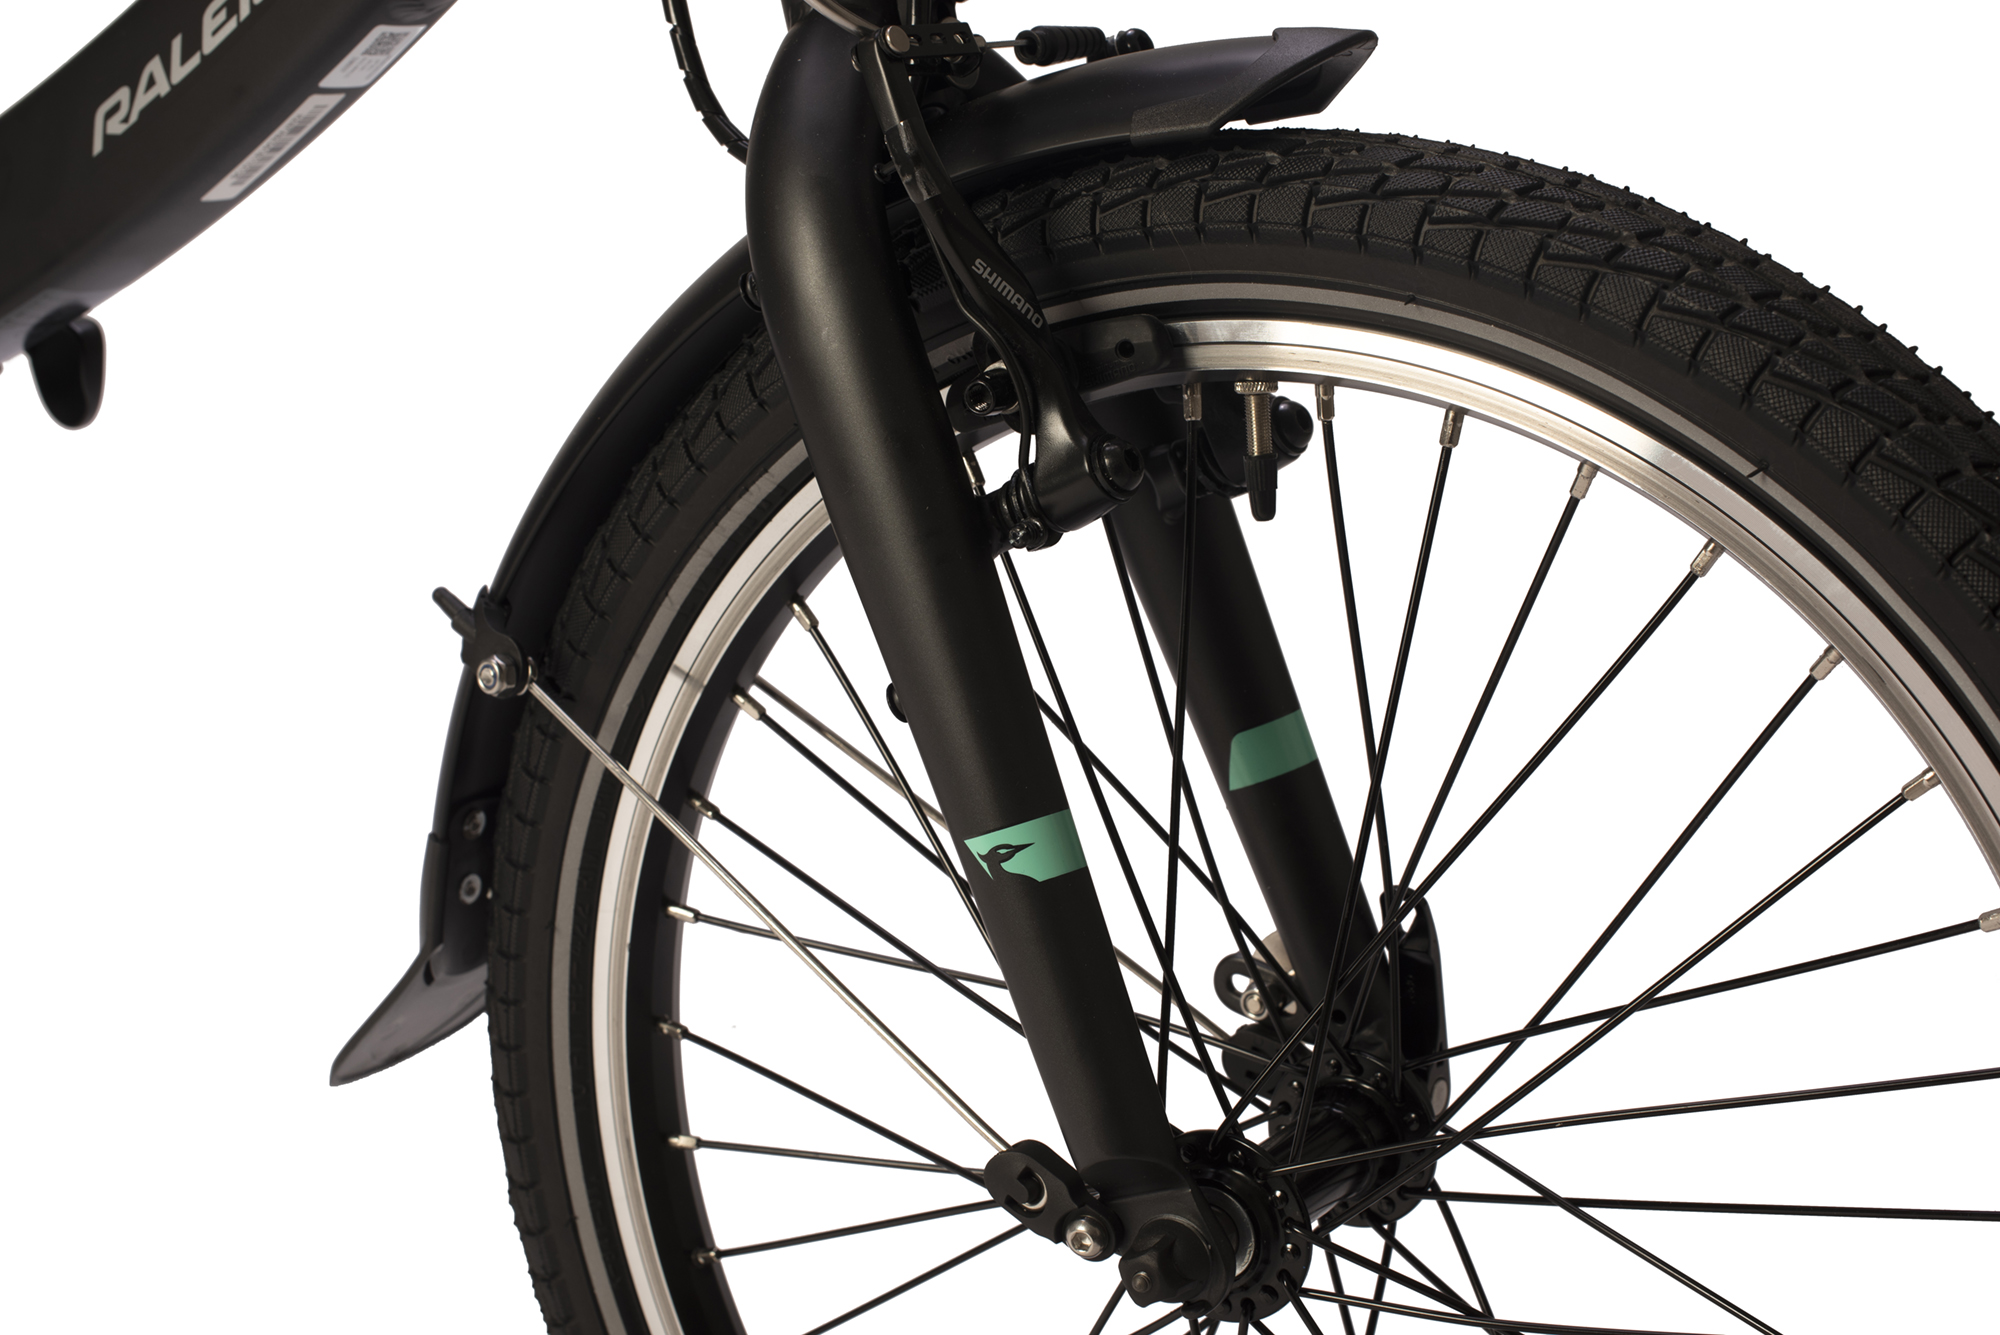 Front wheel on the Raleigh Stow-E-way folding electric bike